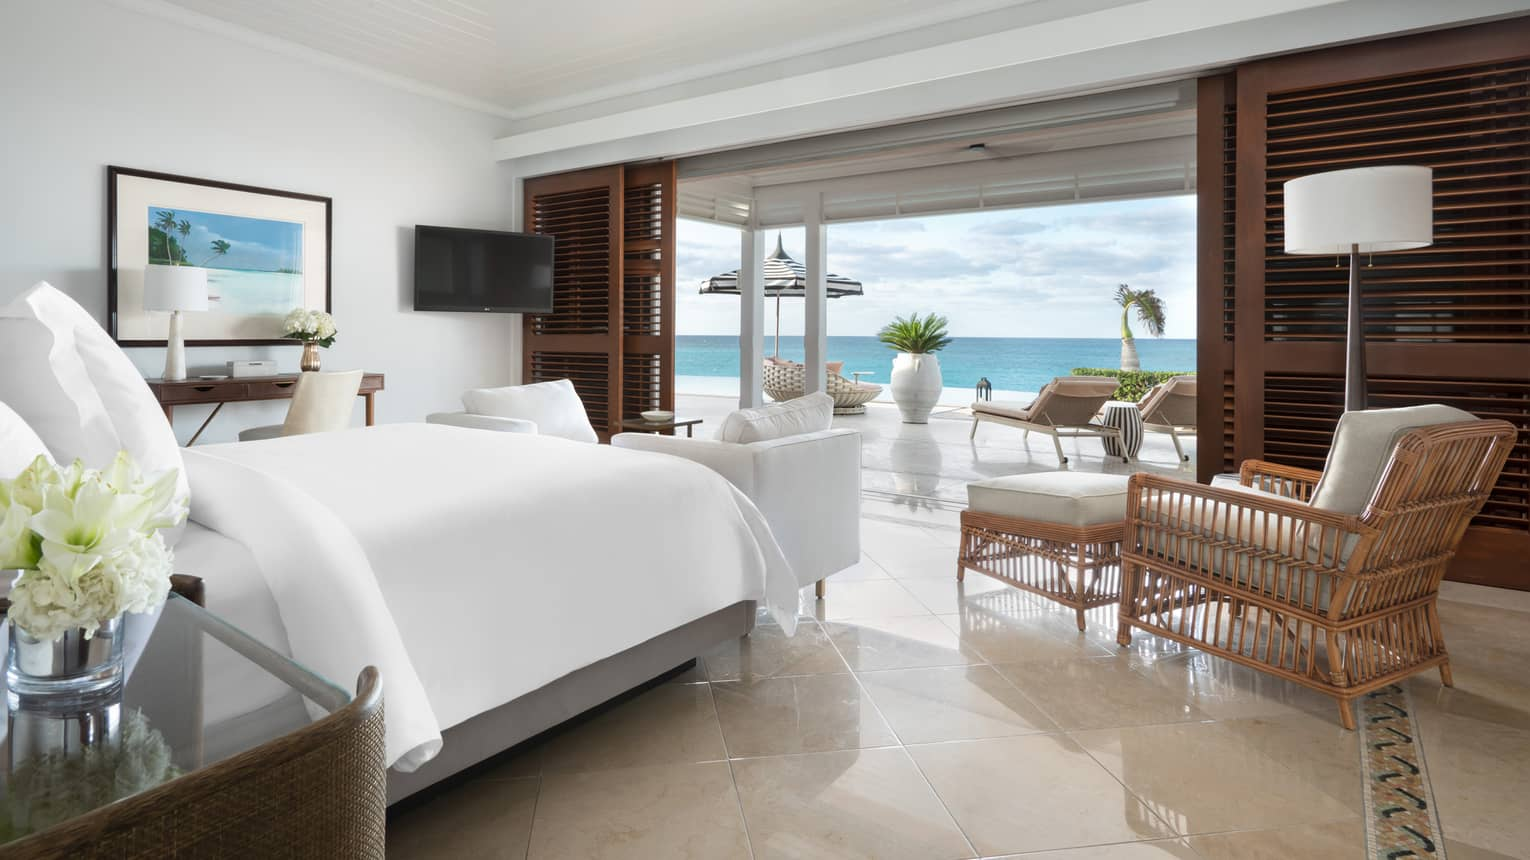 Beachfront Villa Residence Master Bedroom overlooking the ocean